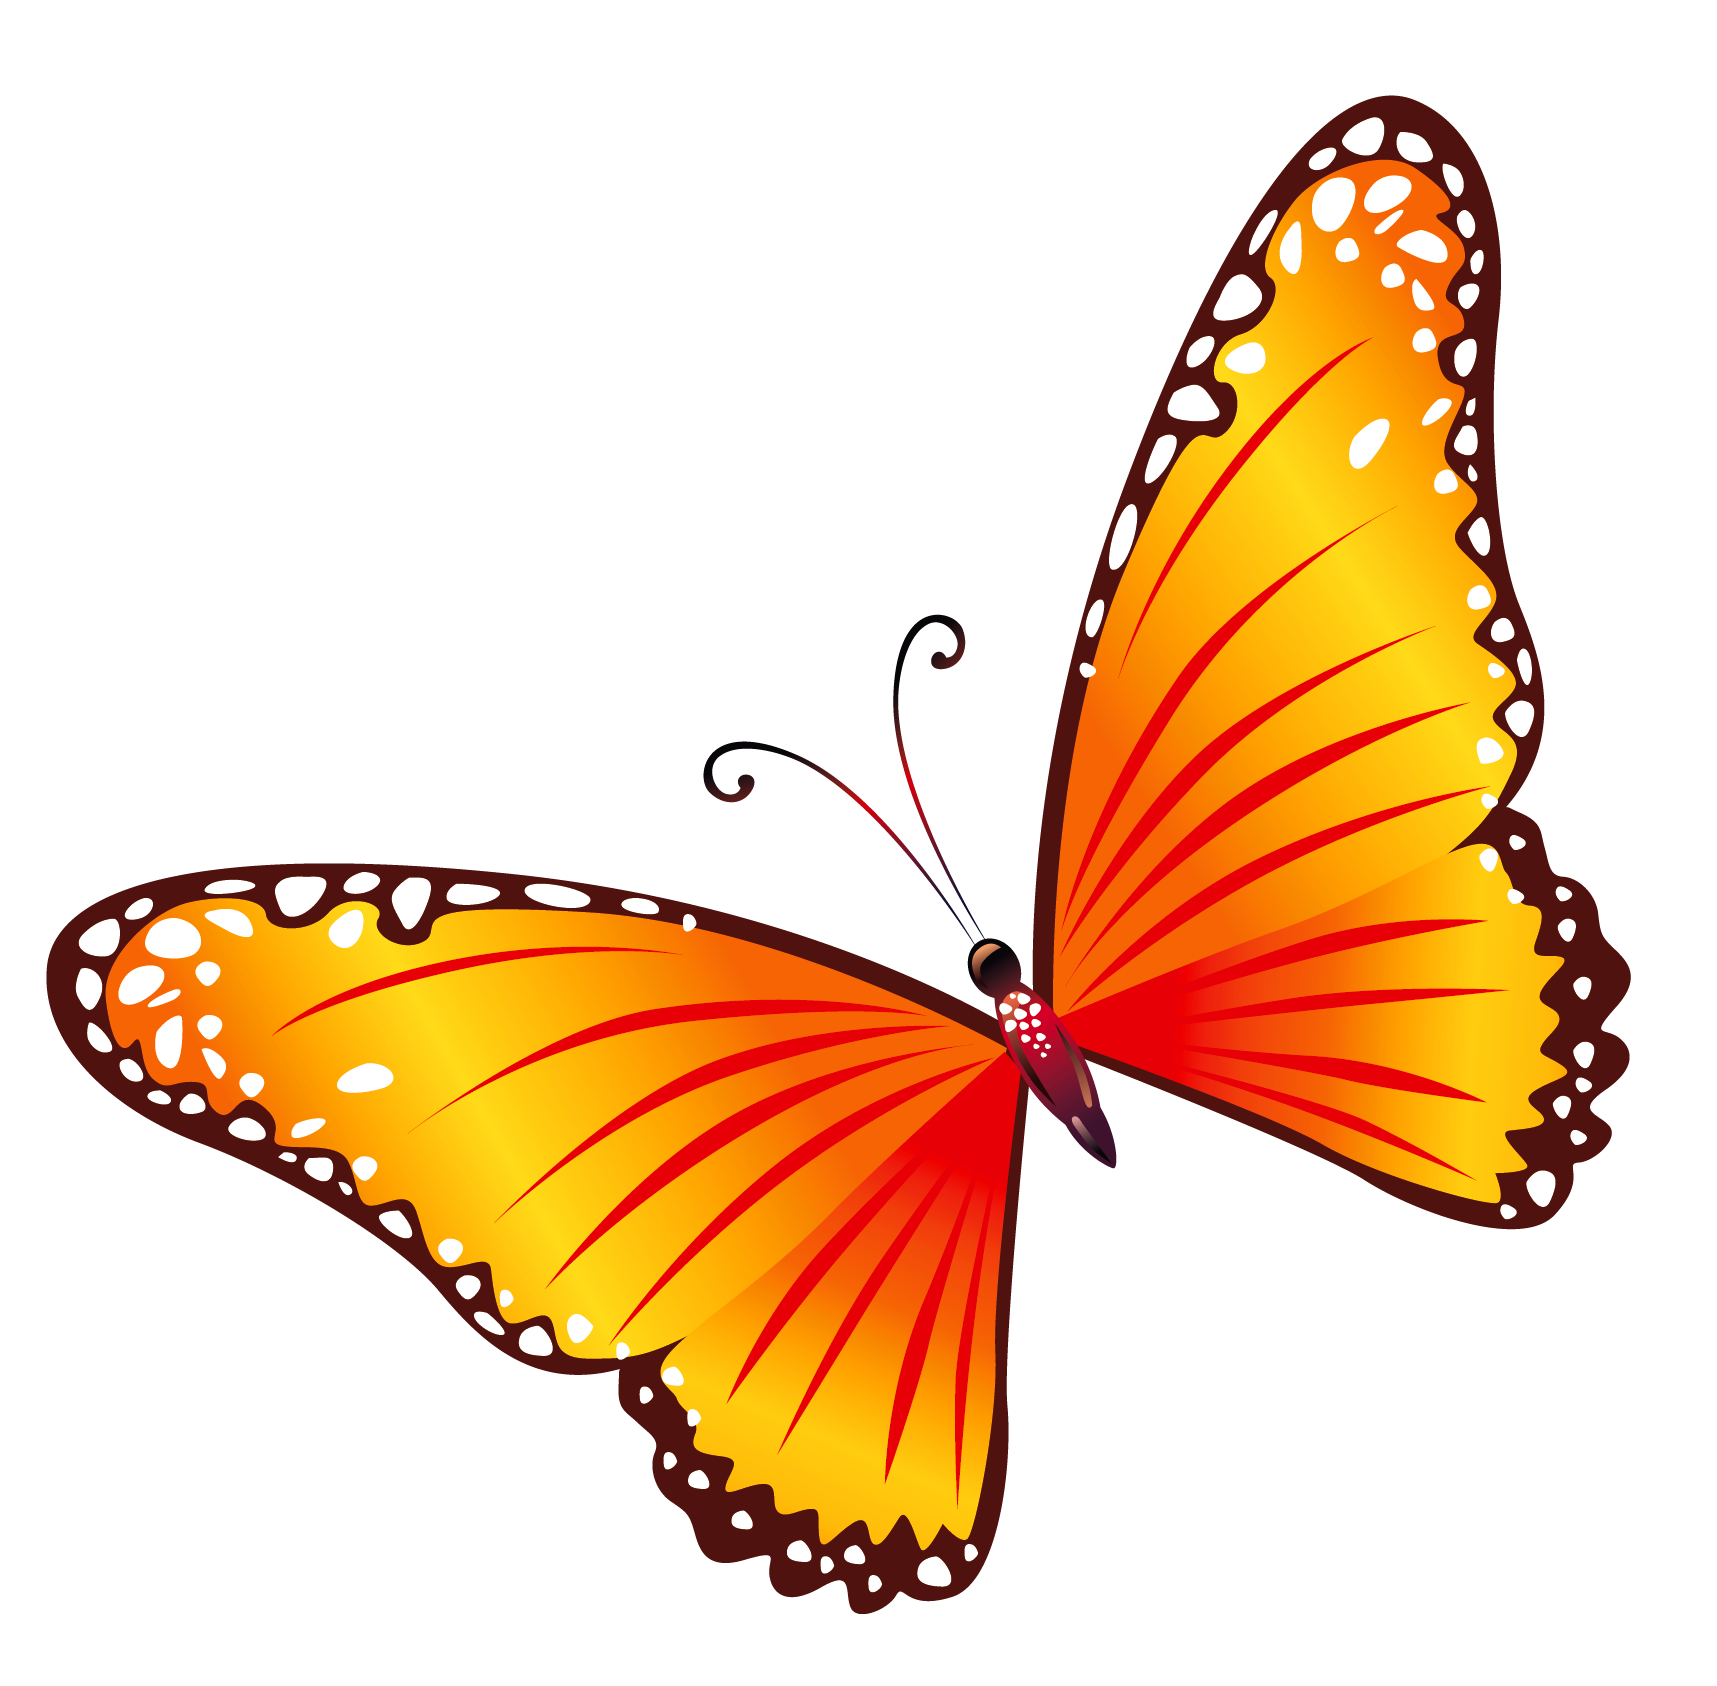 Transparent Orange Butterfly Png Clipart Butterfly Clip Art Butterfly Pictures Cartoon Butterfly